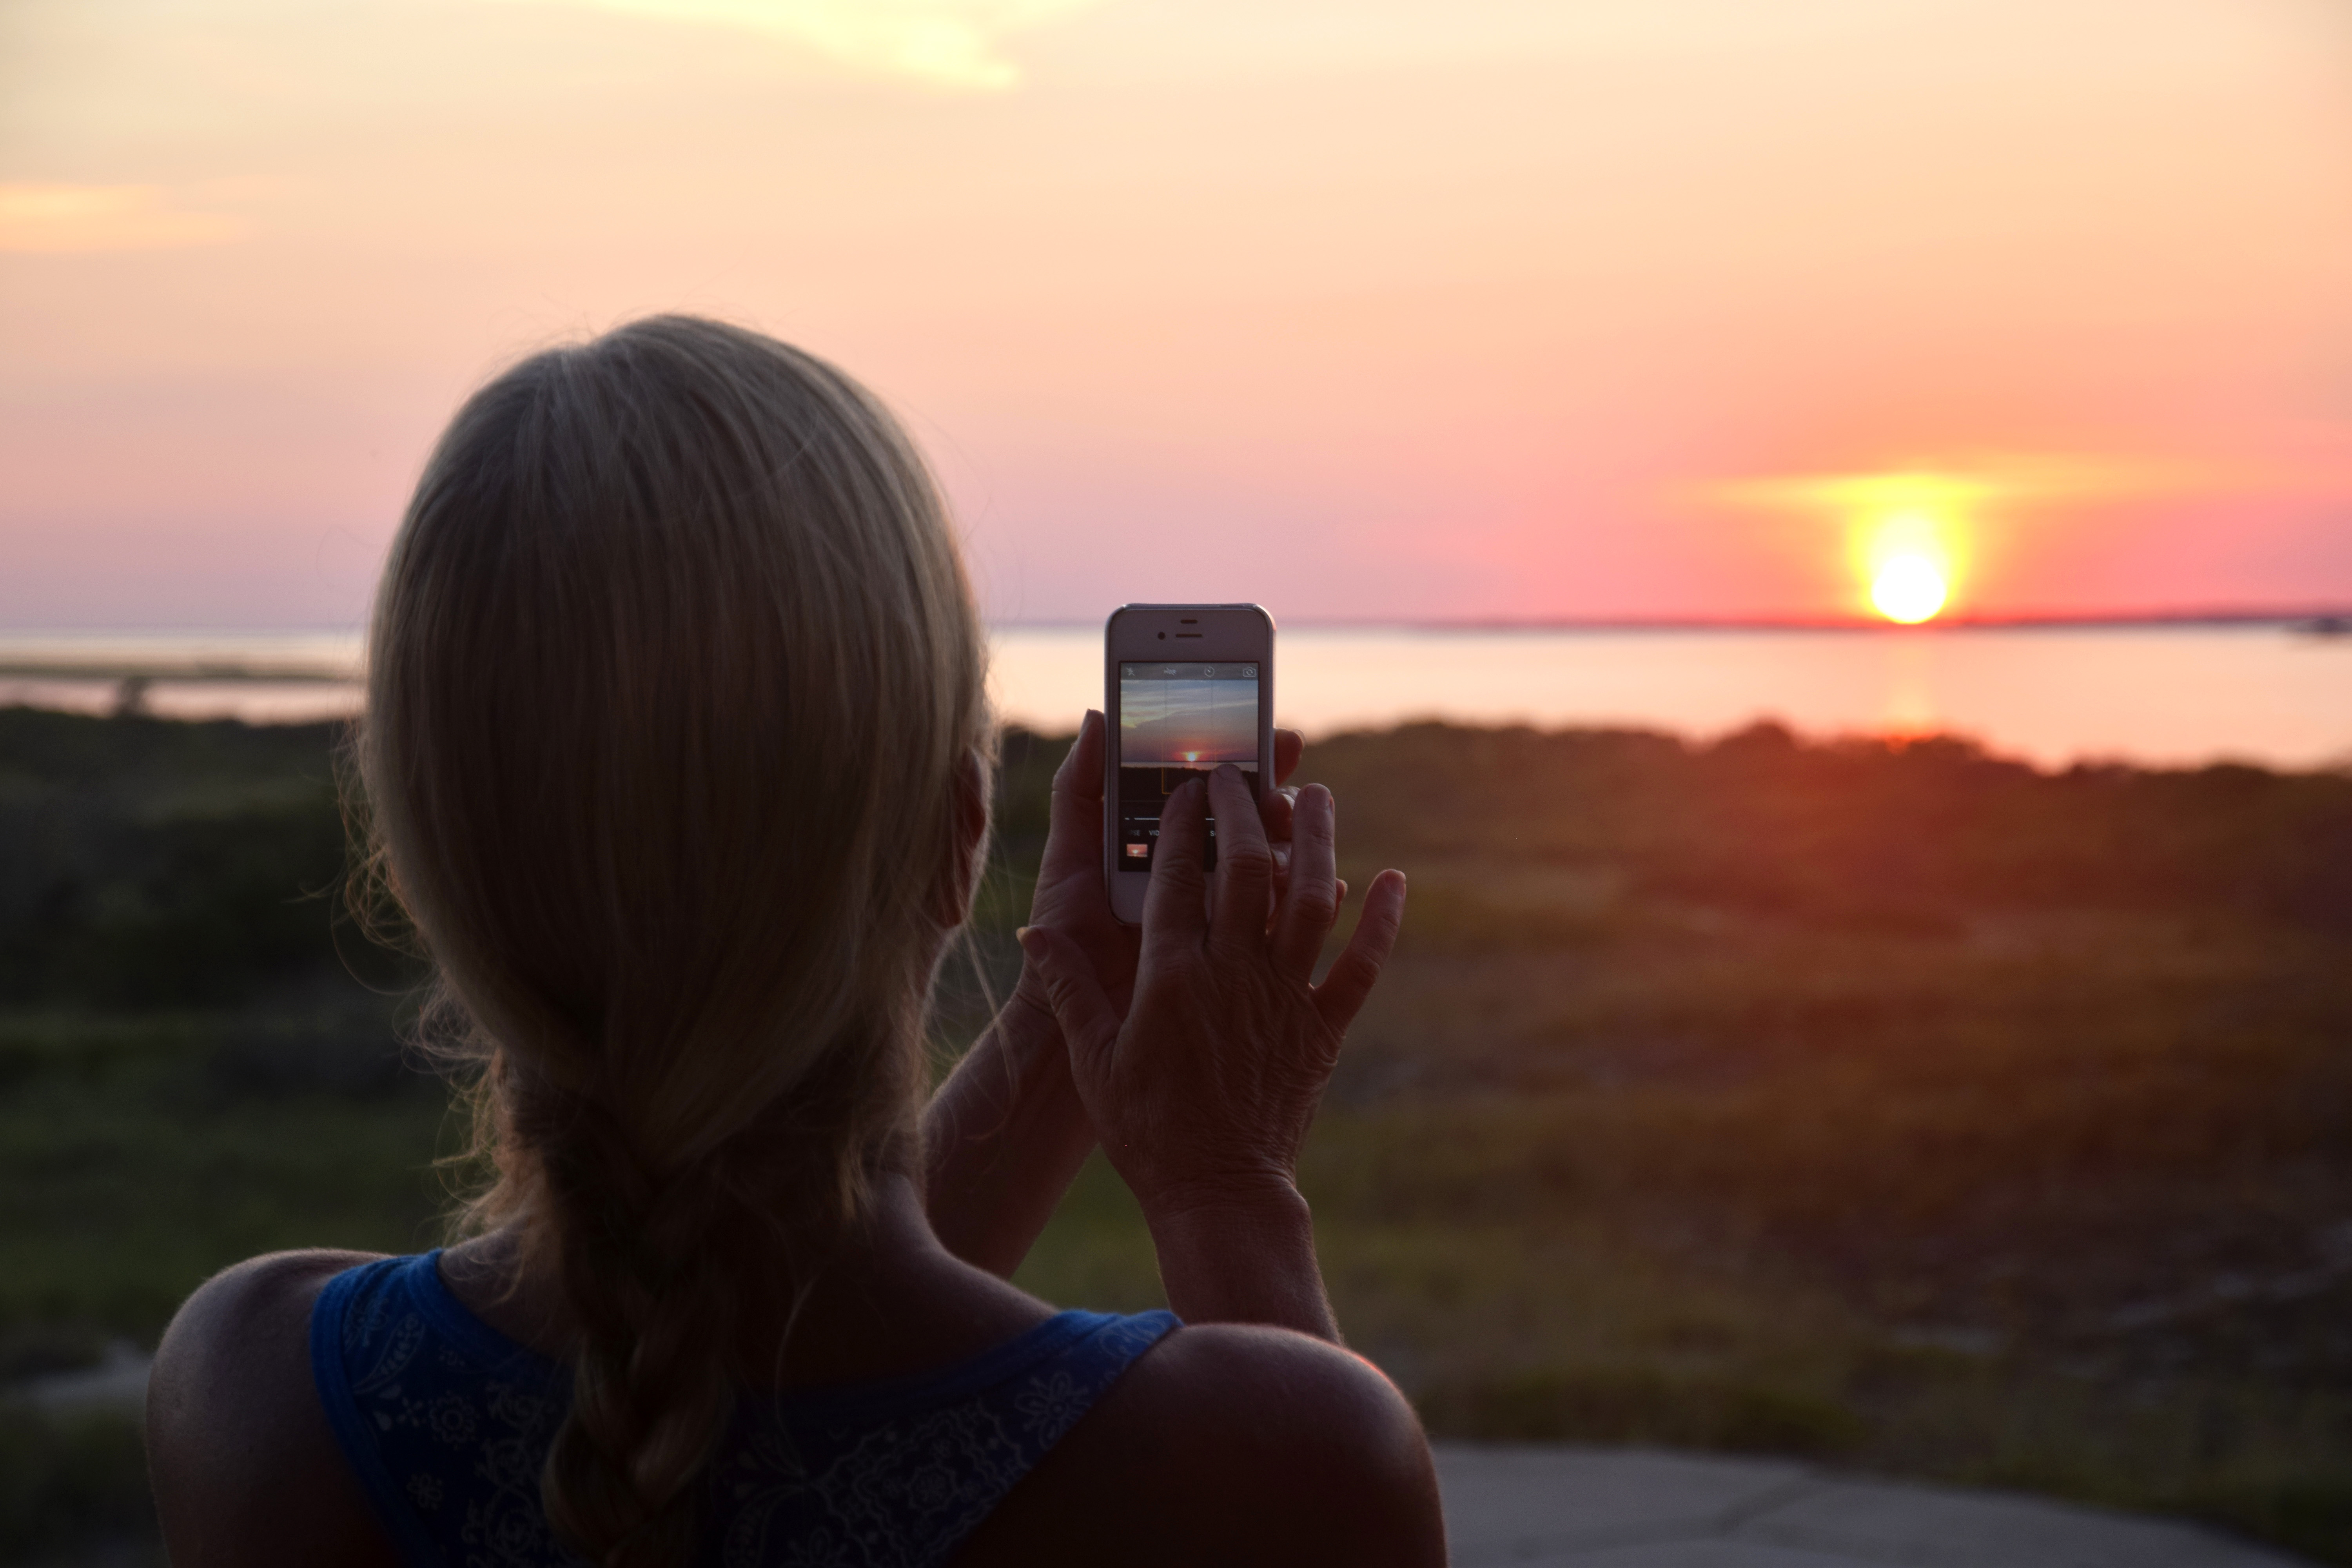 A woman uses a cell phone to photograph sunset.